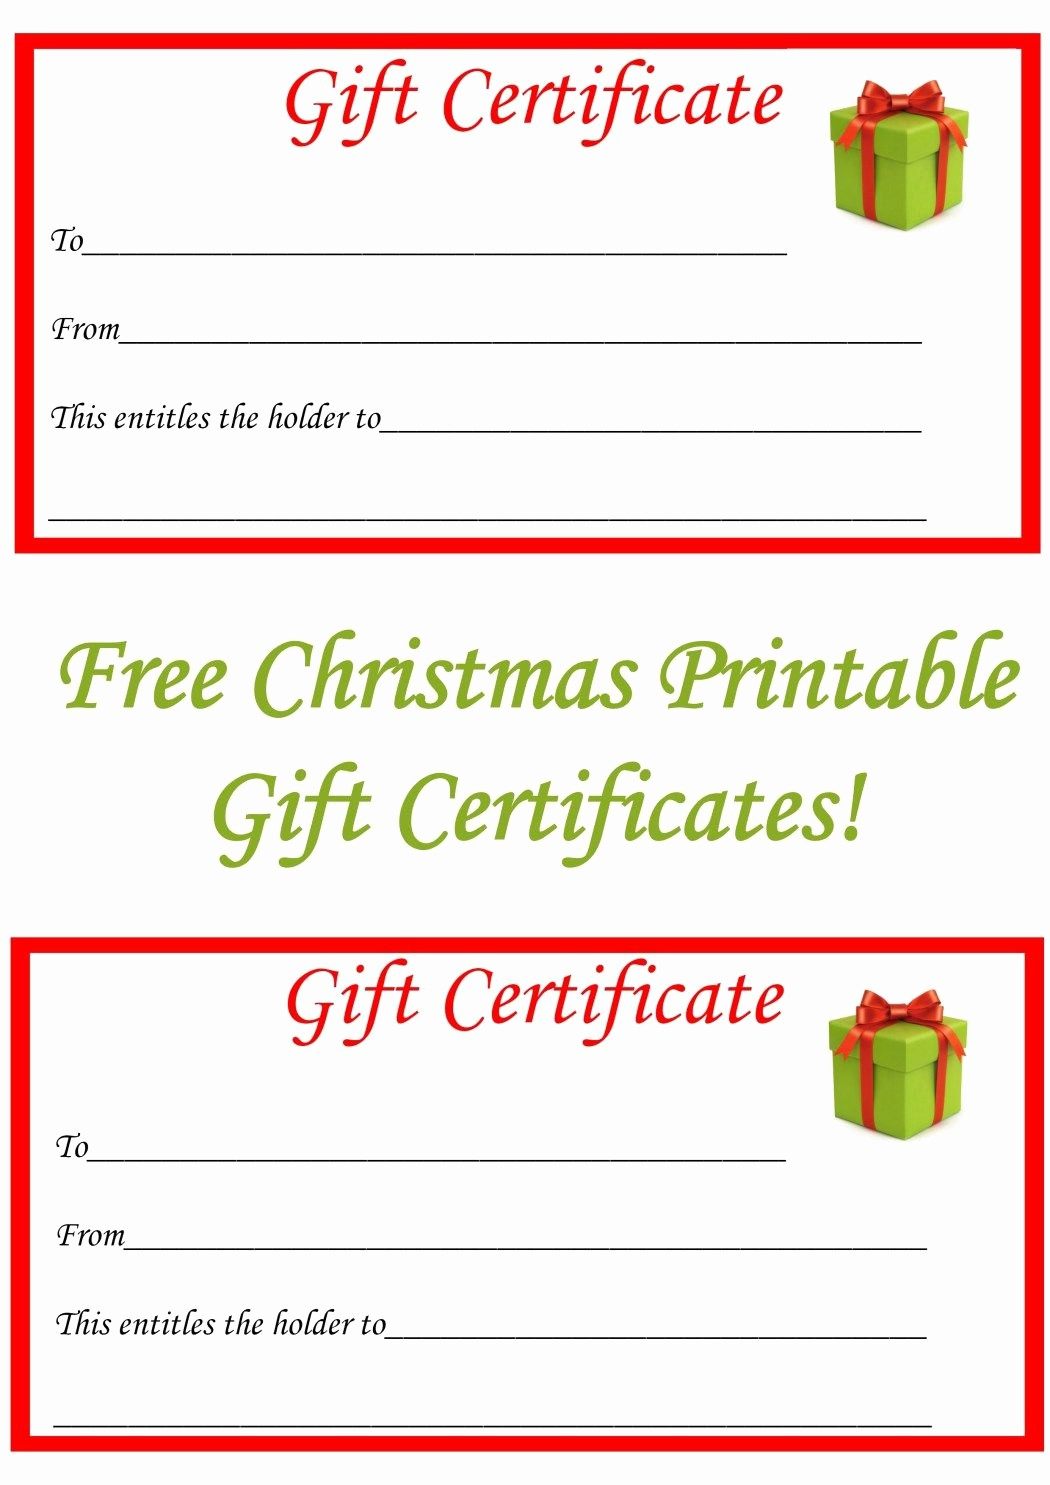 Making Gift Certificates Online Free Luxury Best 25 Printable T Certificates Ideas On Pinterest